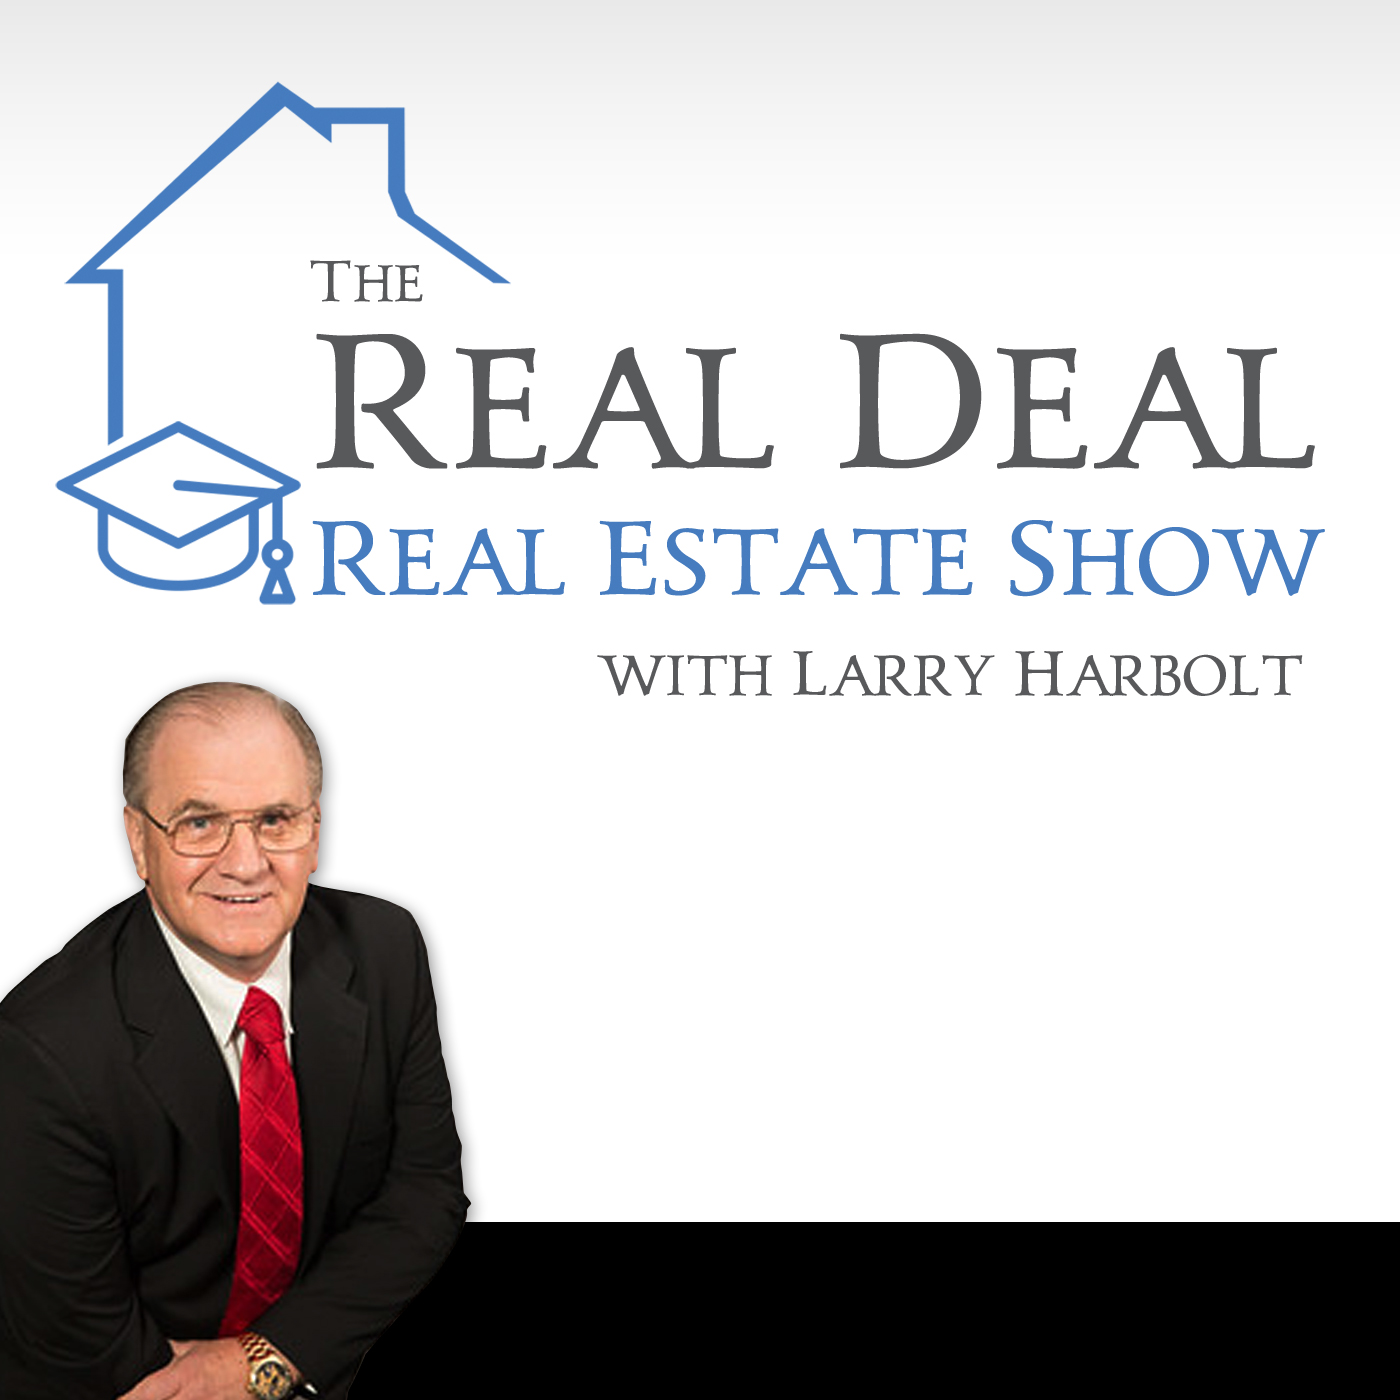 The Real Deal Real Estate Show with Larry Harbolt